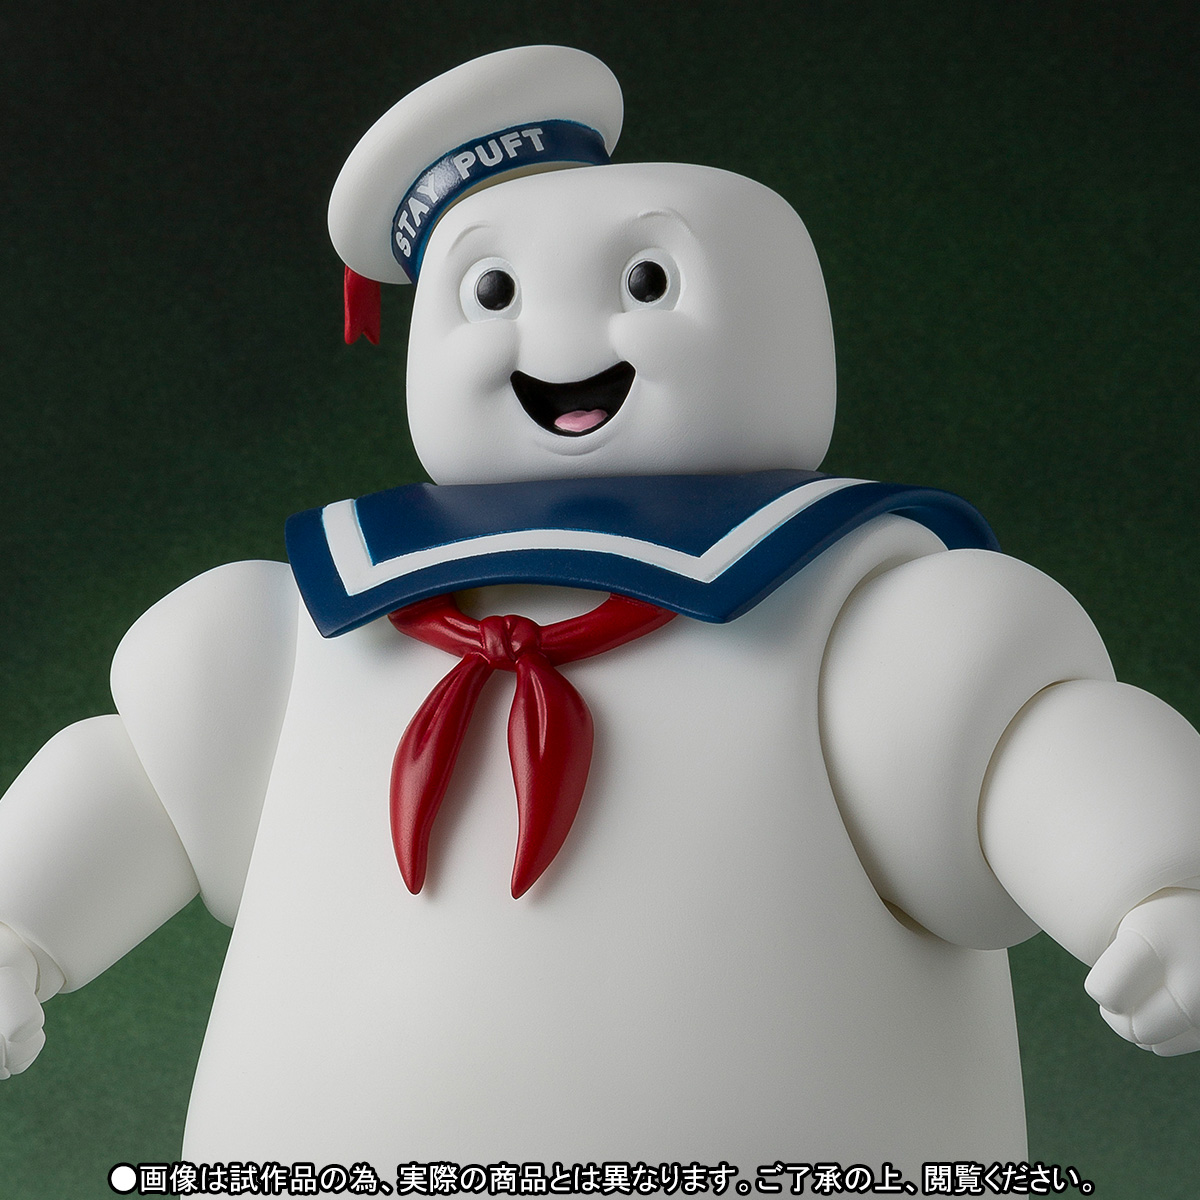 Ghostbusters - Stay Puft Marshmallow Man - S.H.Figuarts (Limited Pre-order)